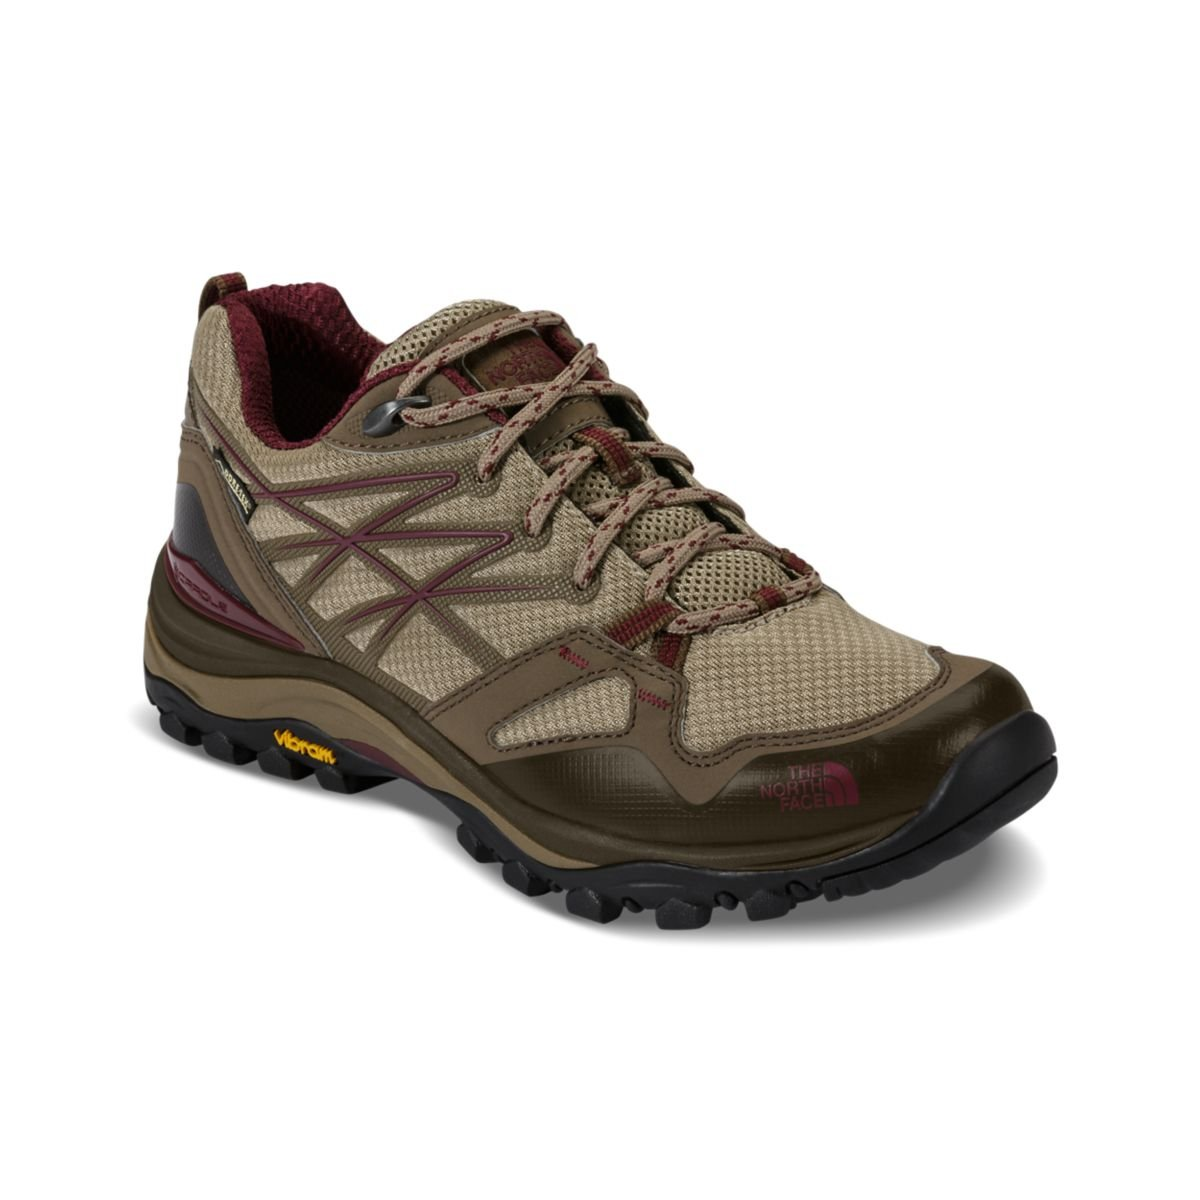 The North Face Women's Hedgehog Fastpack Gore-TEX Hiking Shoe Dune Beige/Deep Garnet Red Size 7.5 M US